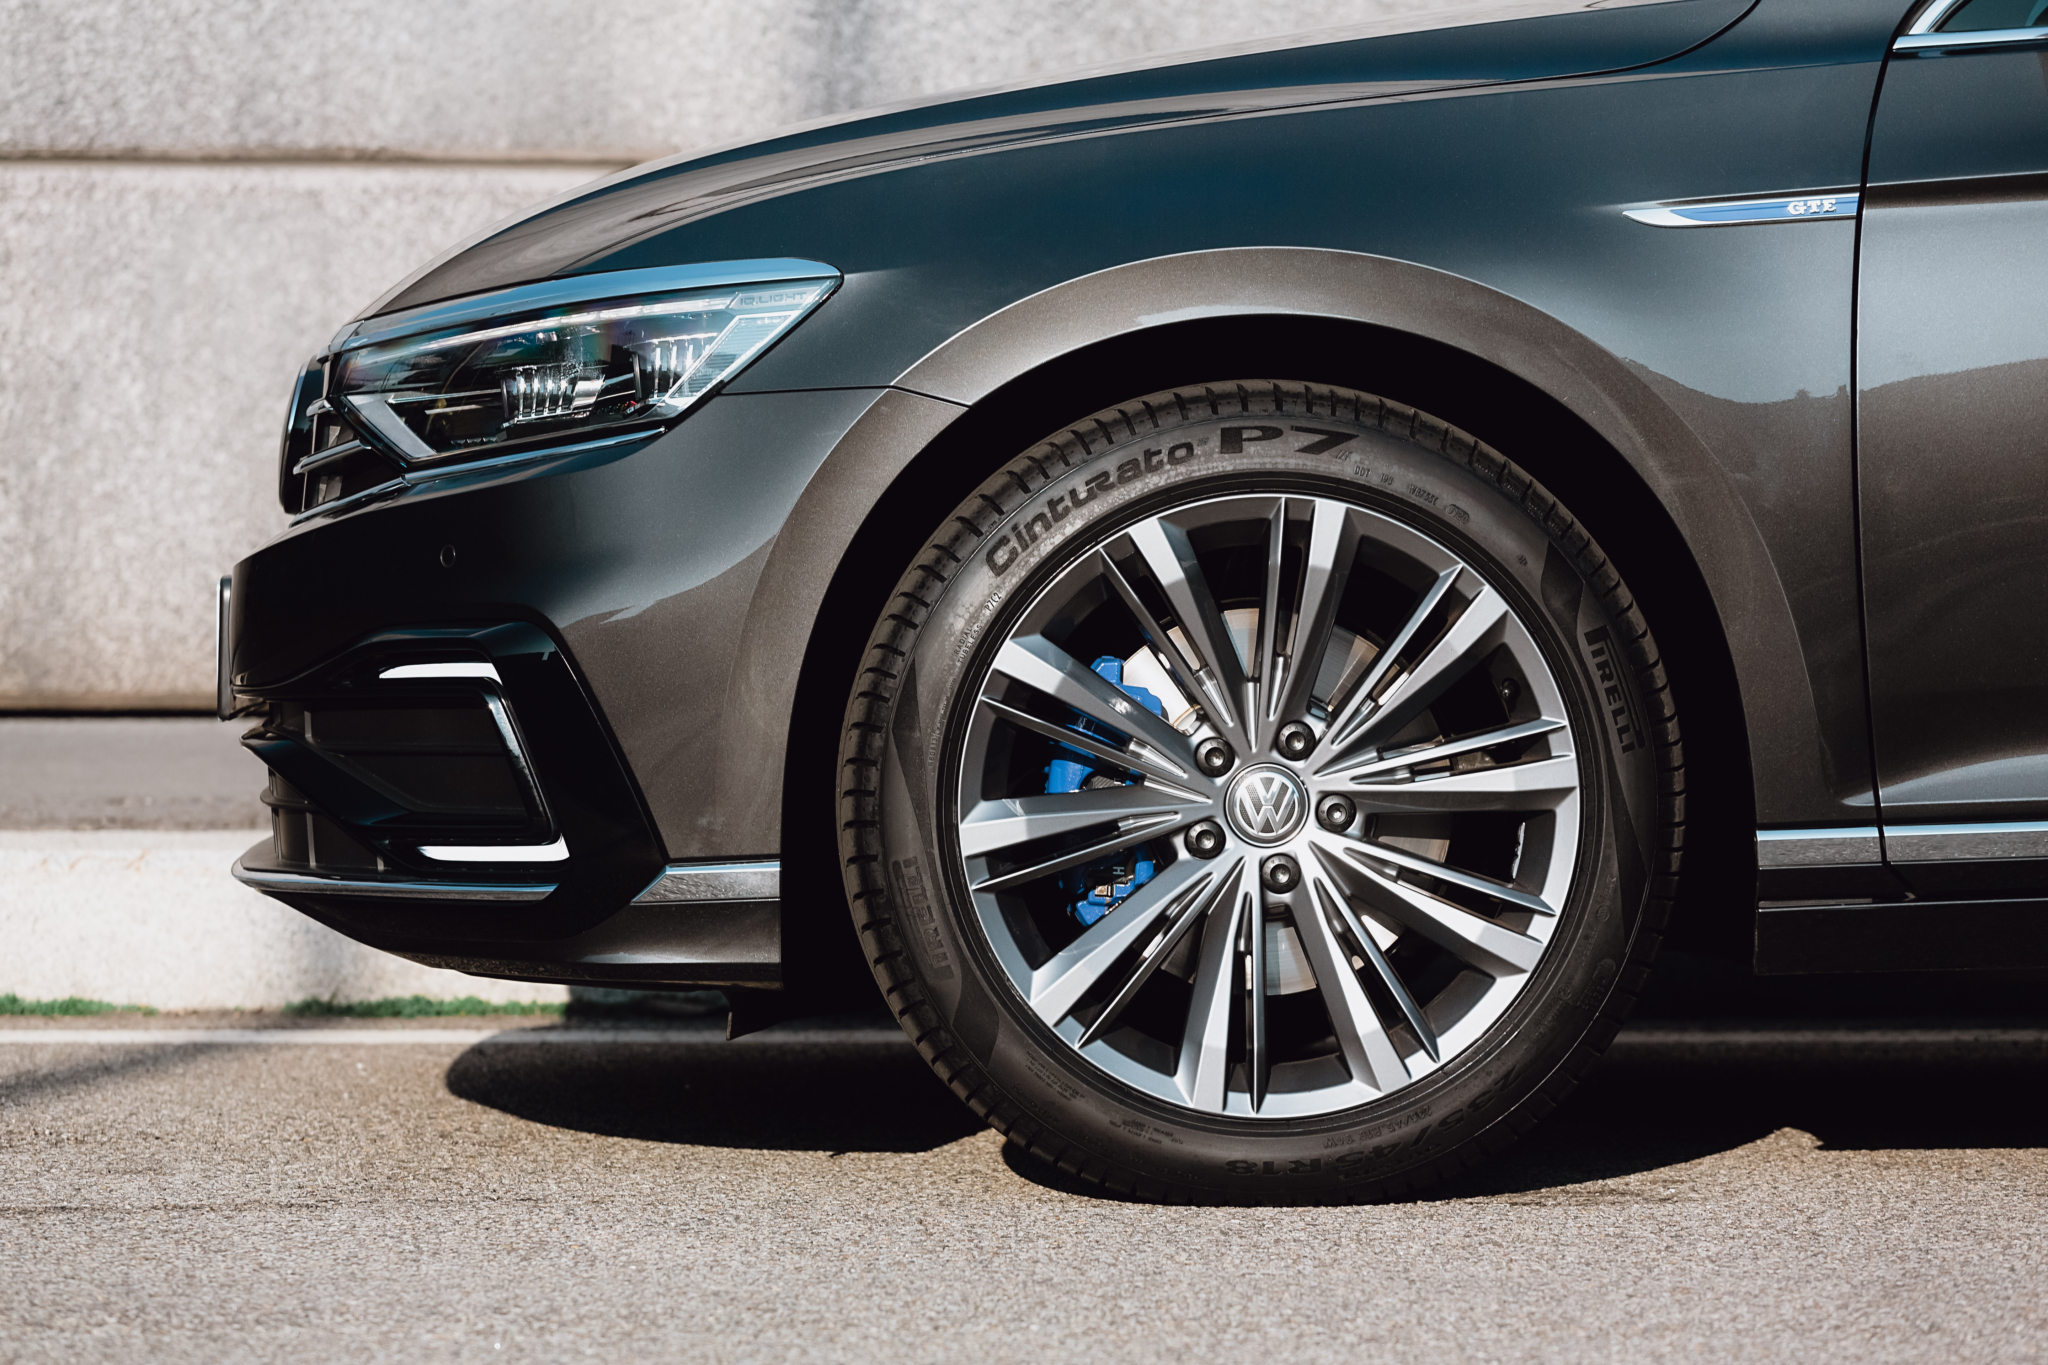 Pirelli launches Cinturato P7 performance tyre with 'intelligent compound'